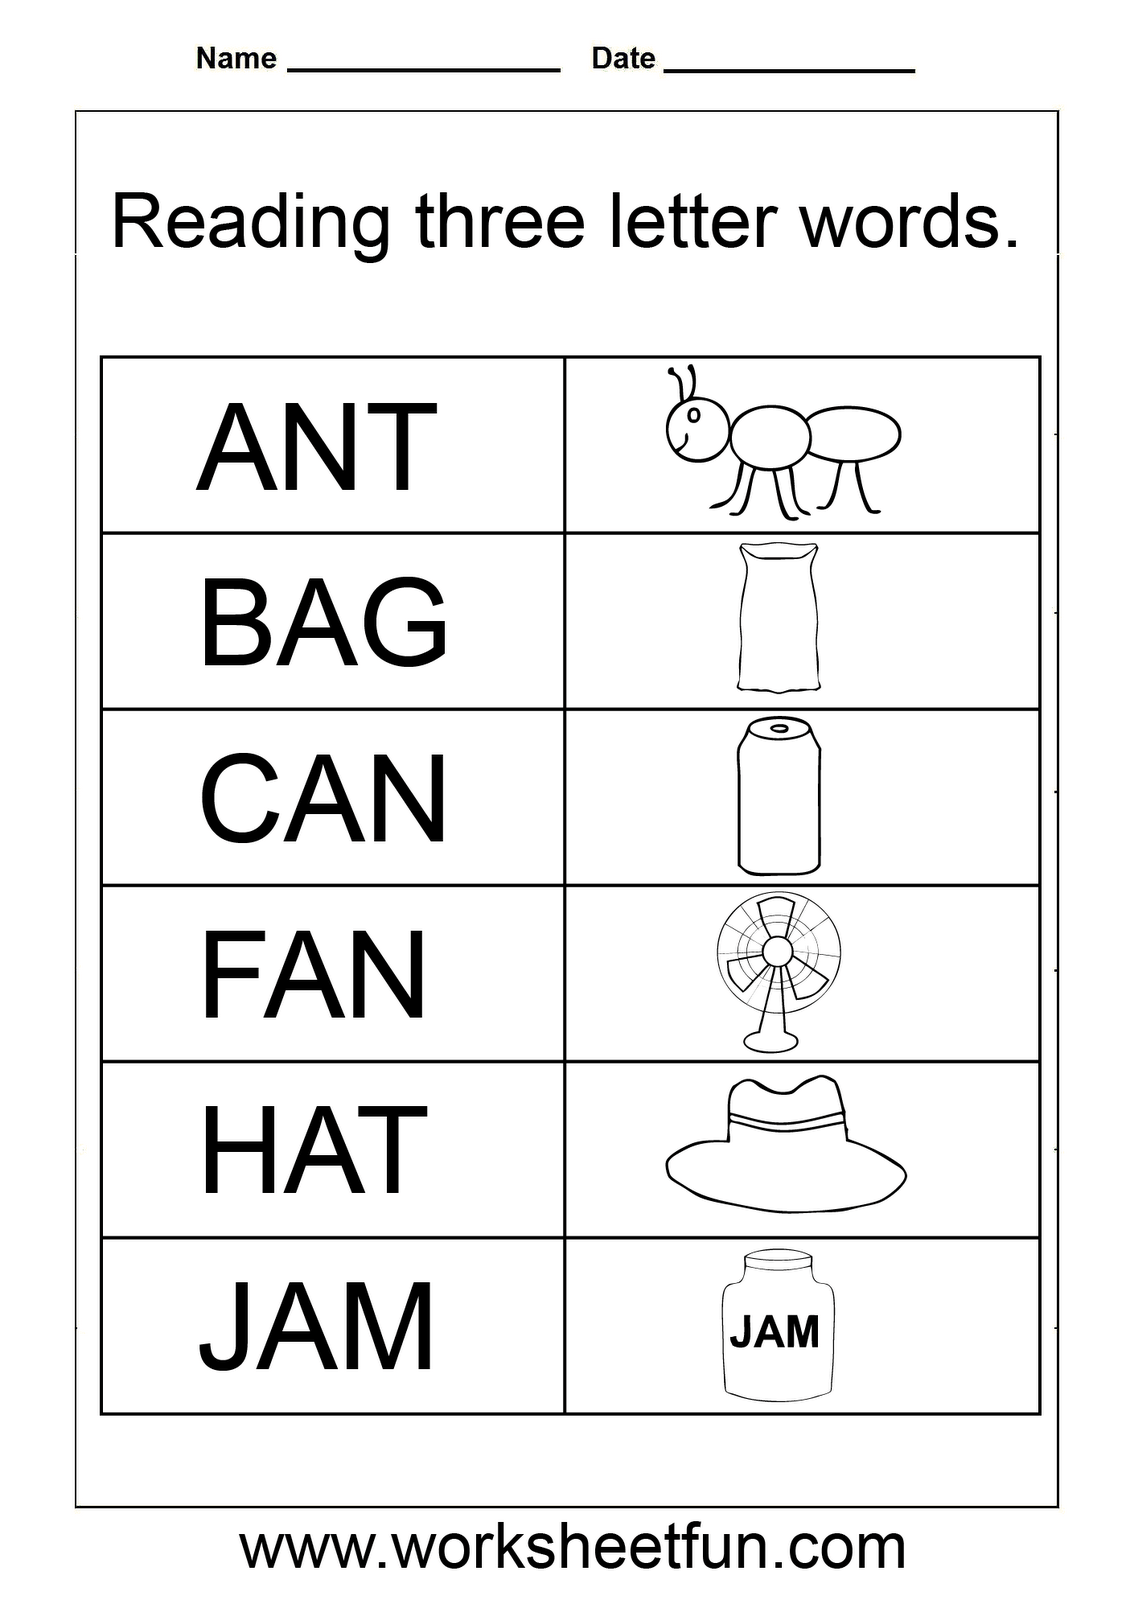 3 Letter Words Worksheets